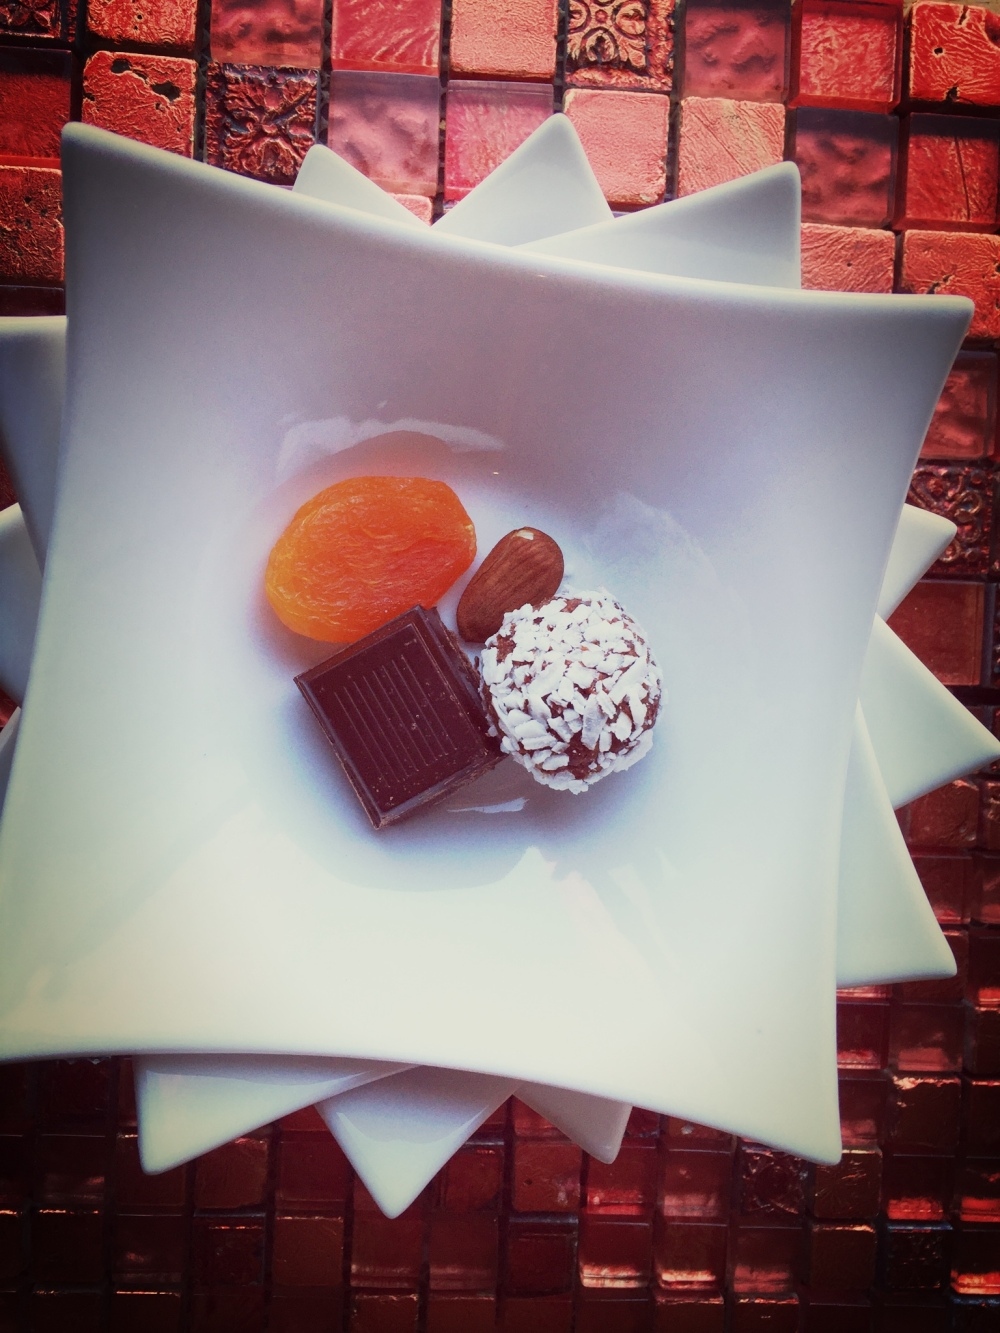 Healthy ingredients: apricot, dark chocolate, almond, coconut